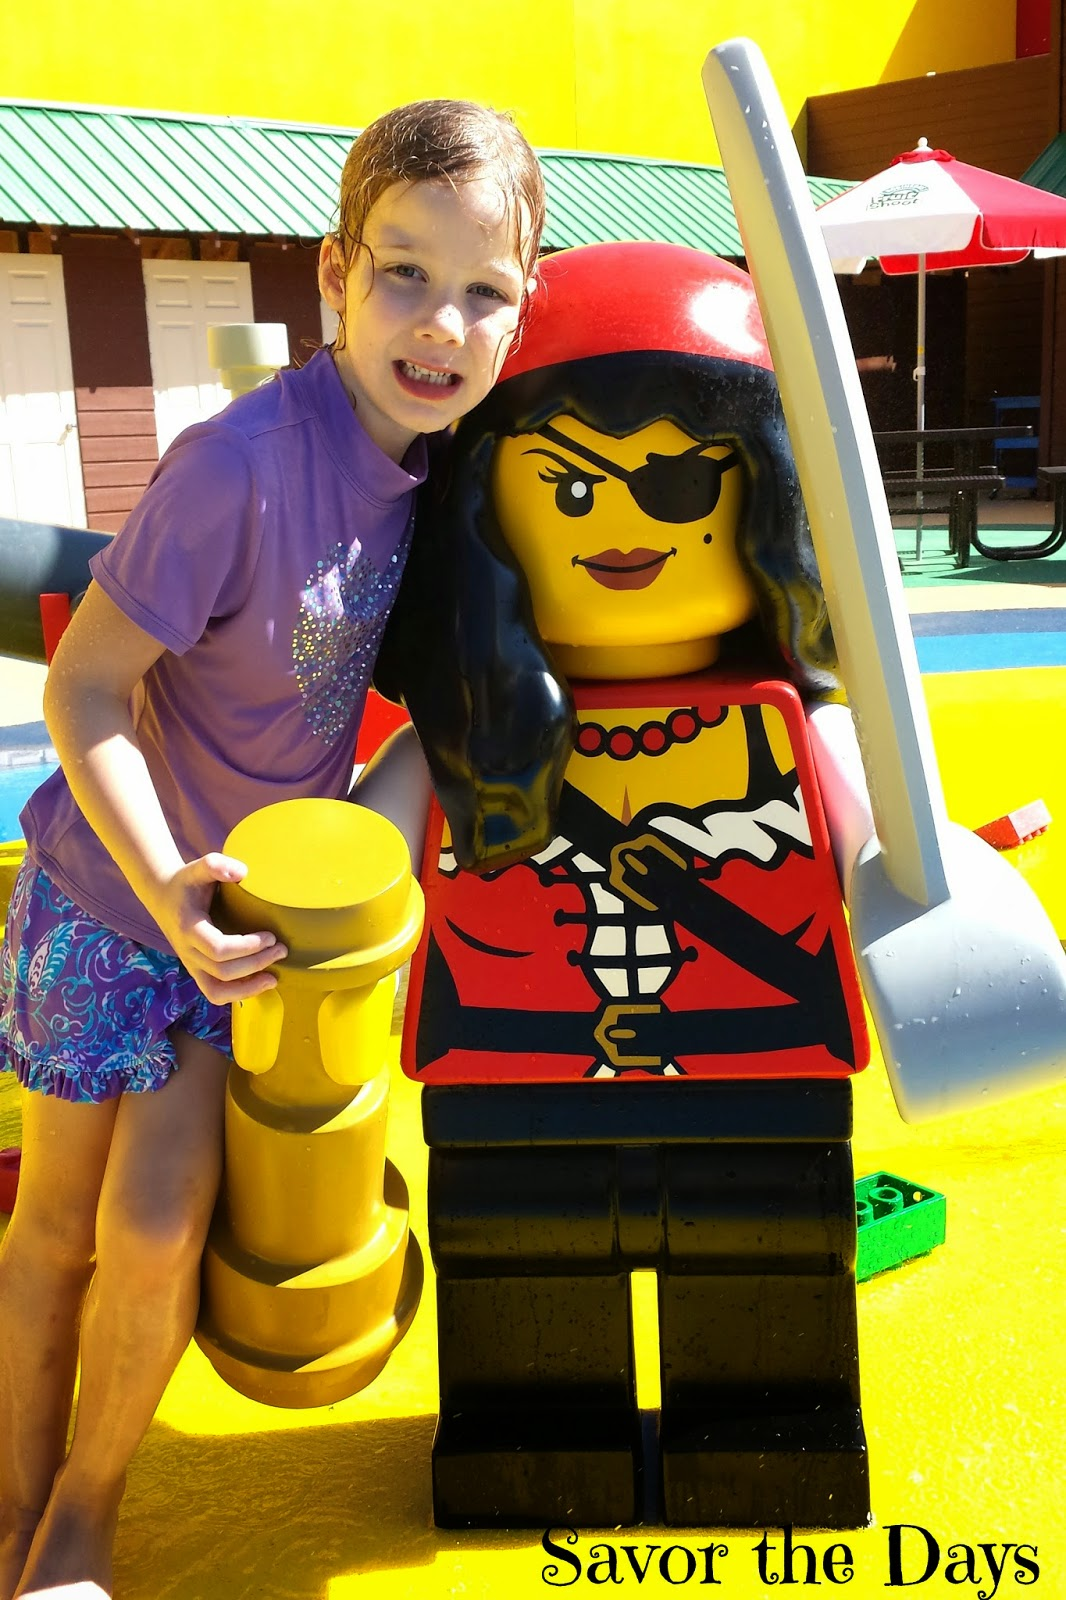 Pirate girl at Pirate Beach at Legoland Discovery Center in Grapevine